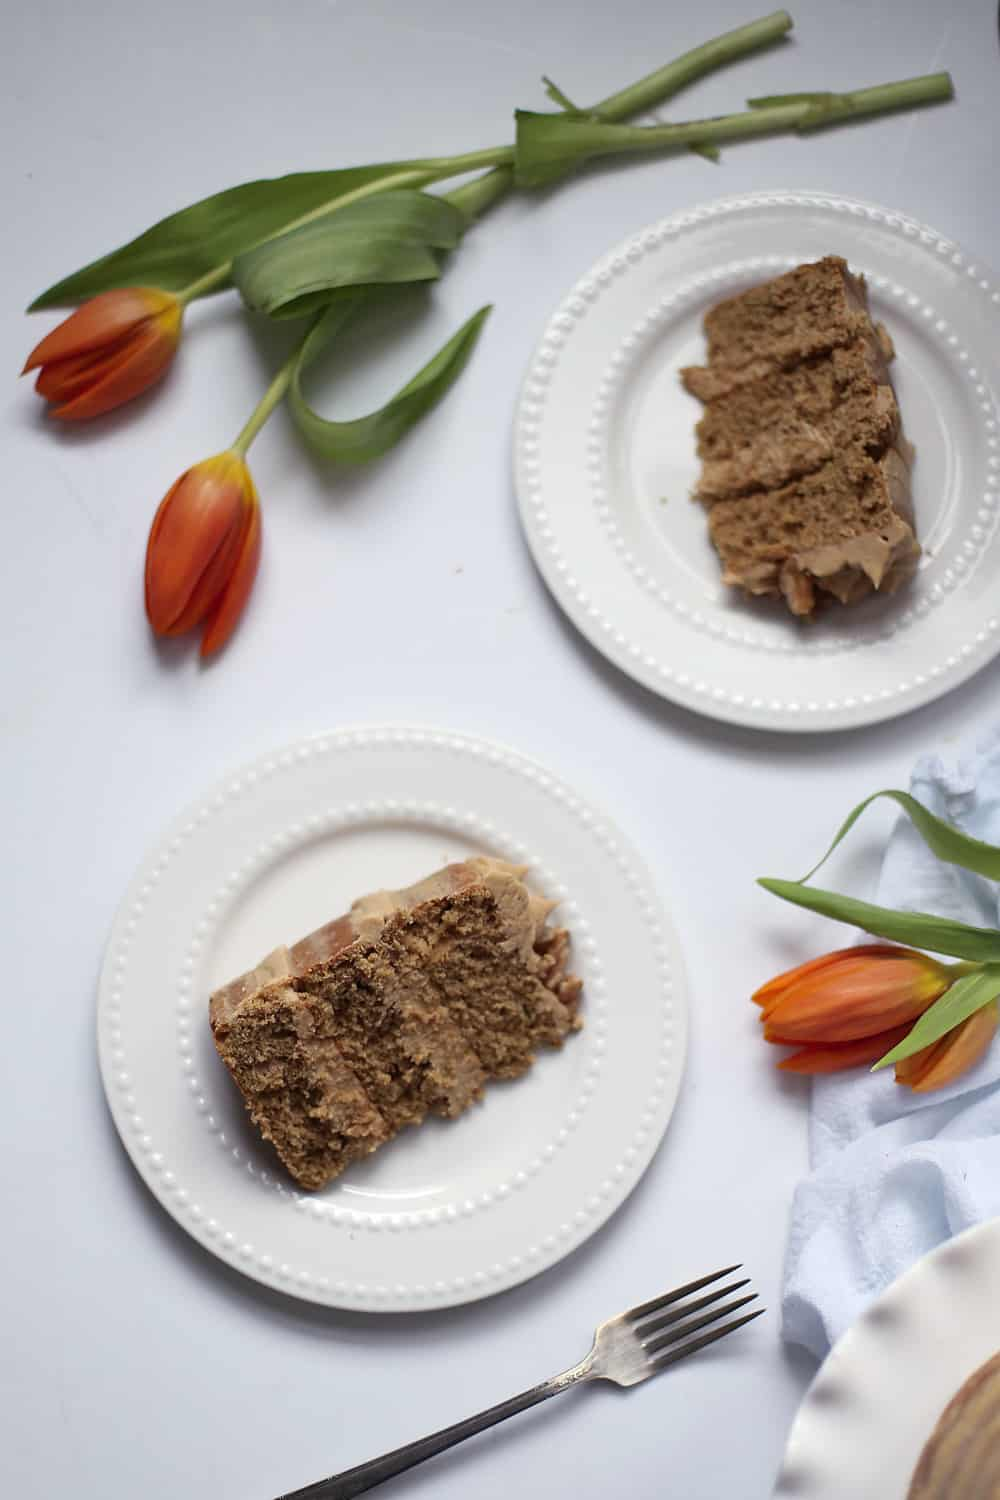 two slices of coffee walnut cake on white plates with orange tulips.